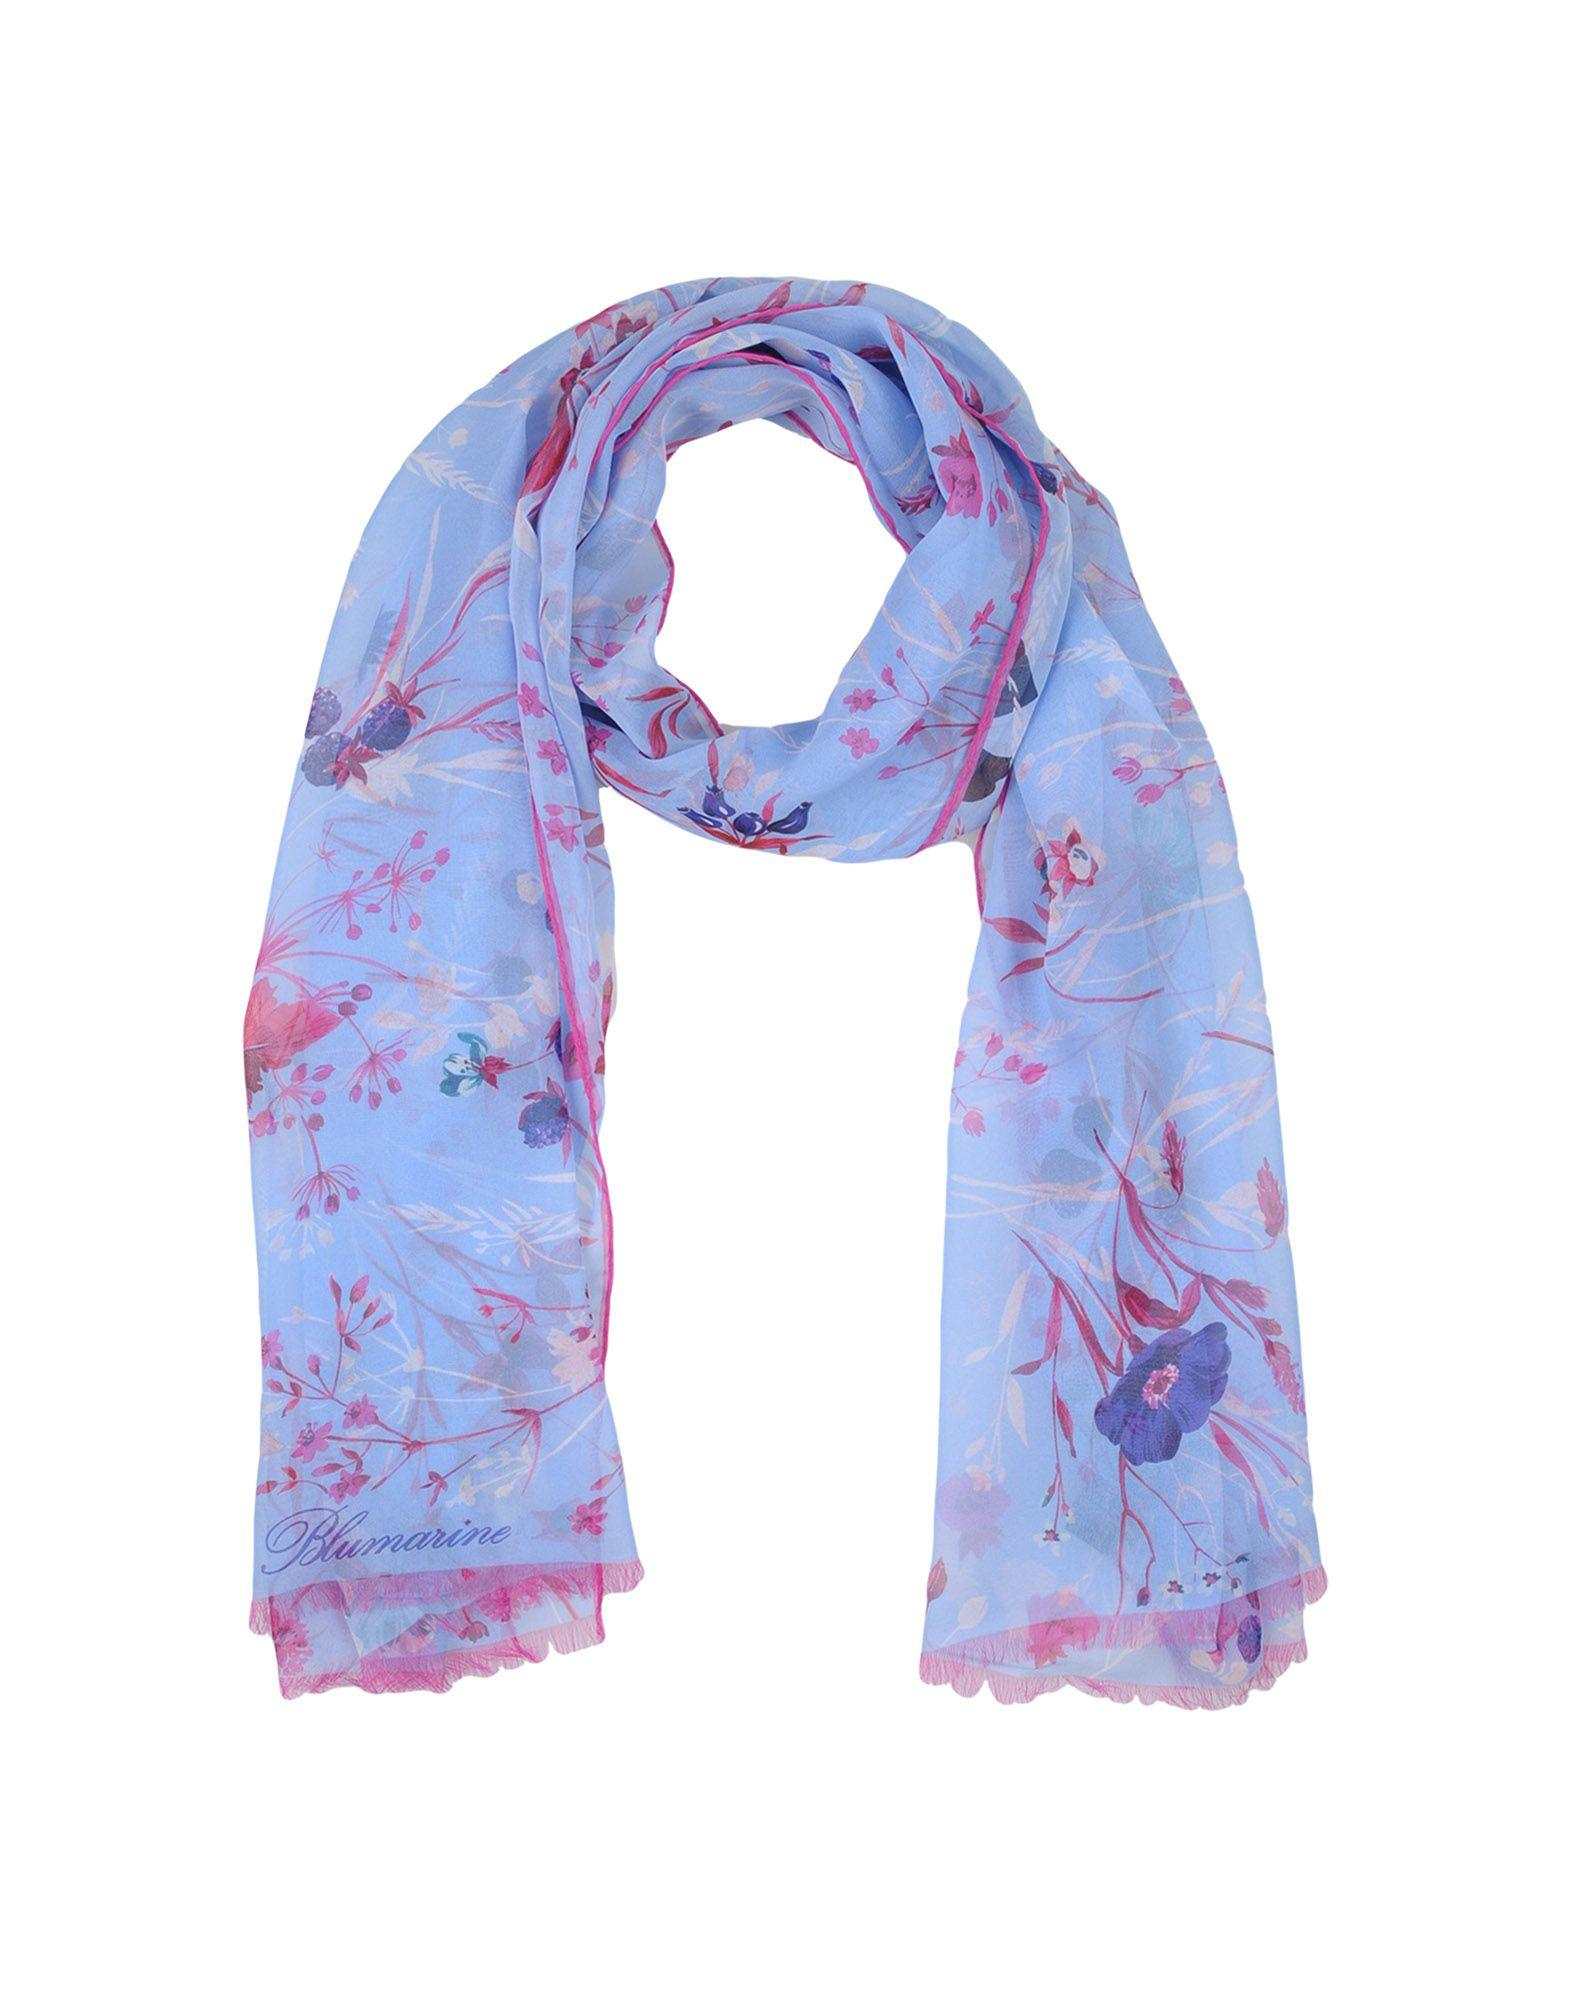 Blumarine Oblong Scarves In Sky Blue